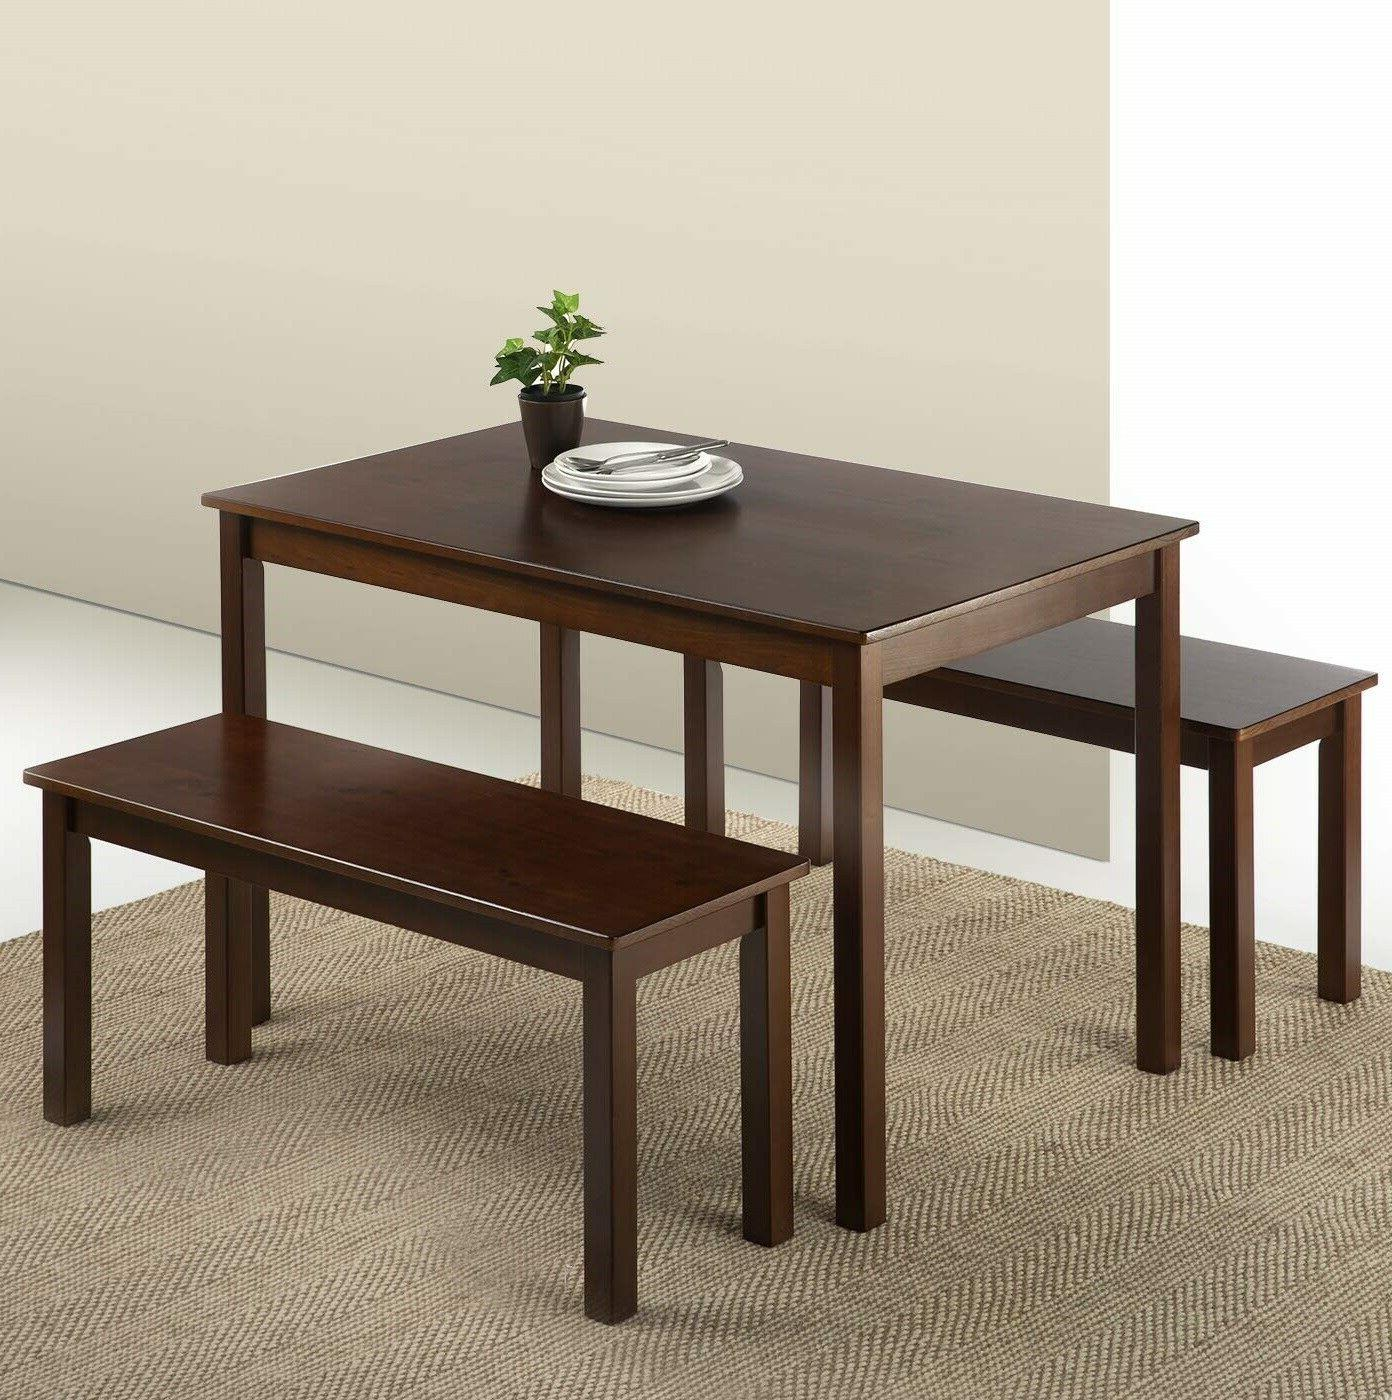 modern wooden dining set 4 person bench